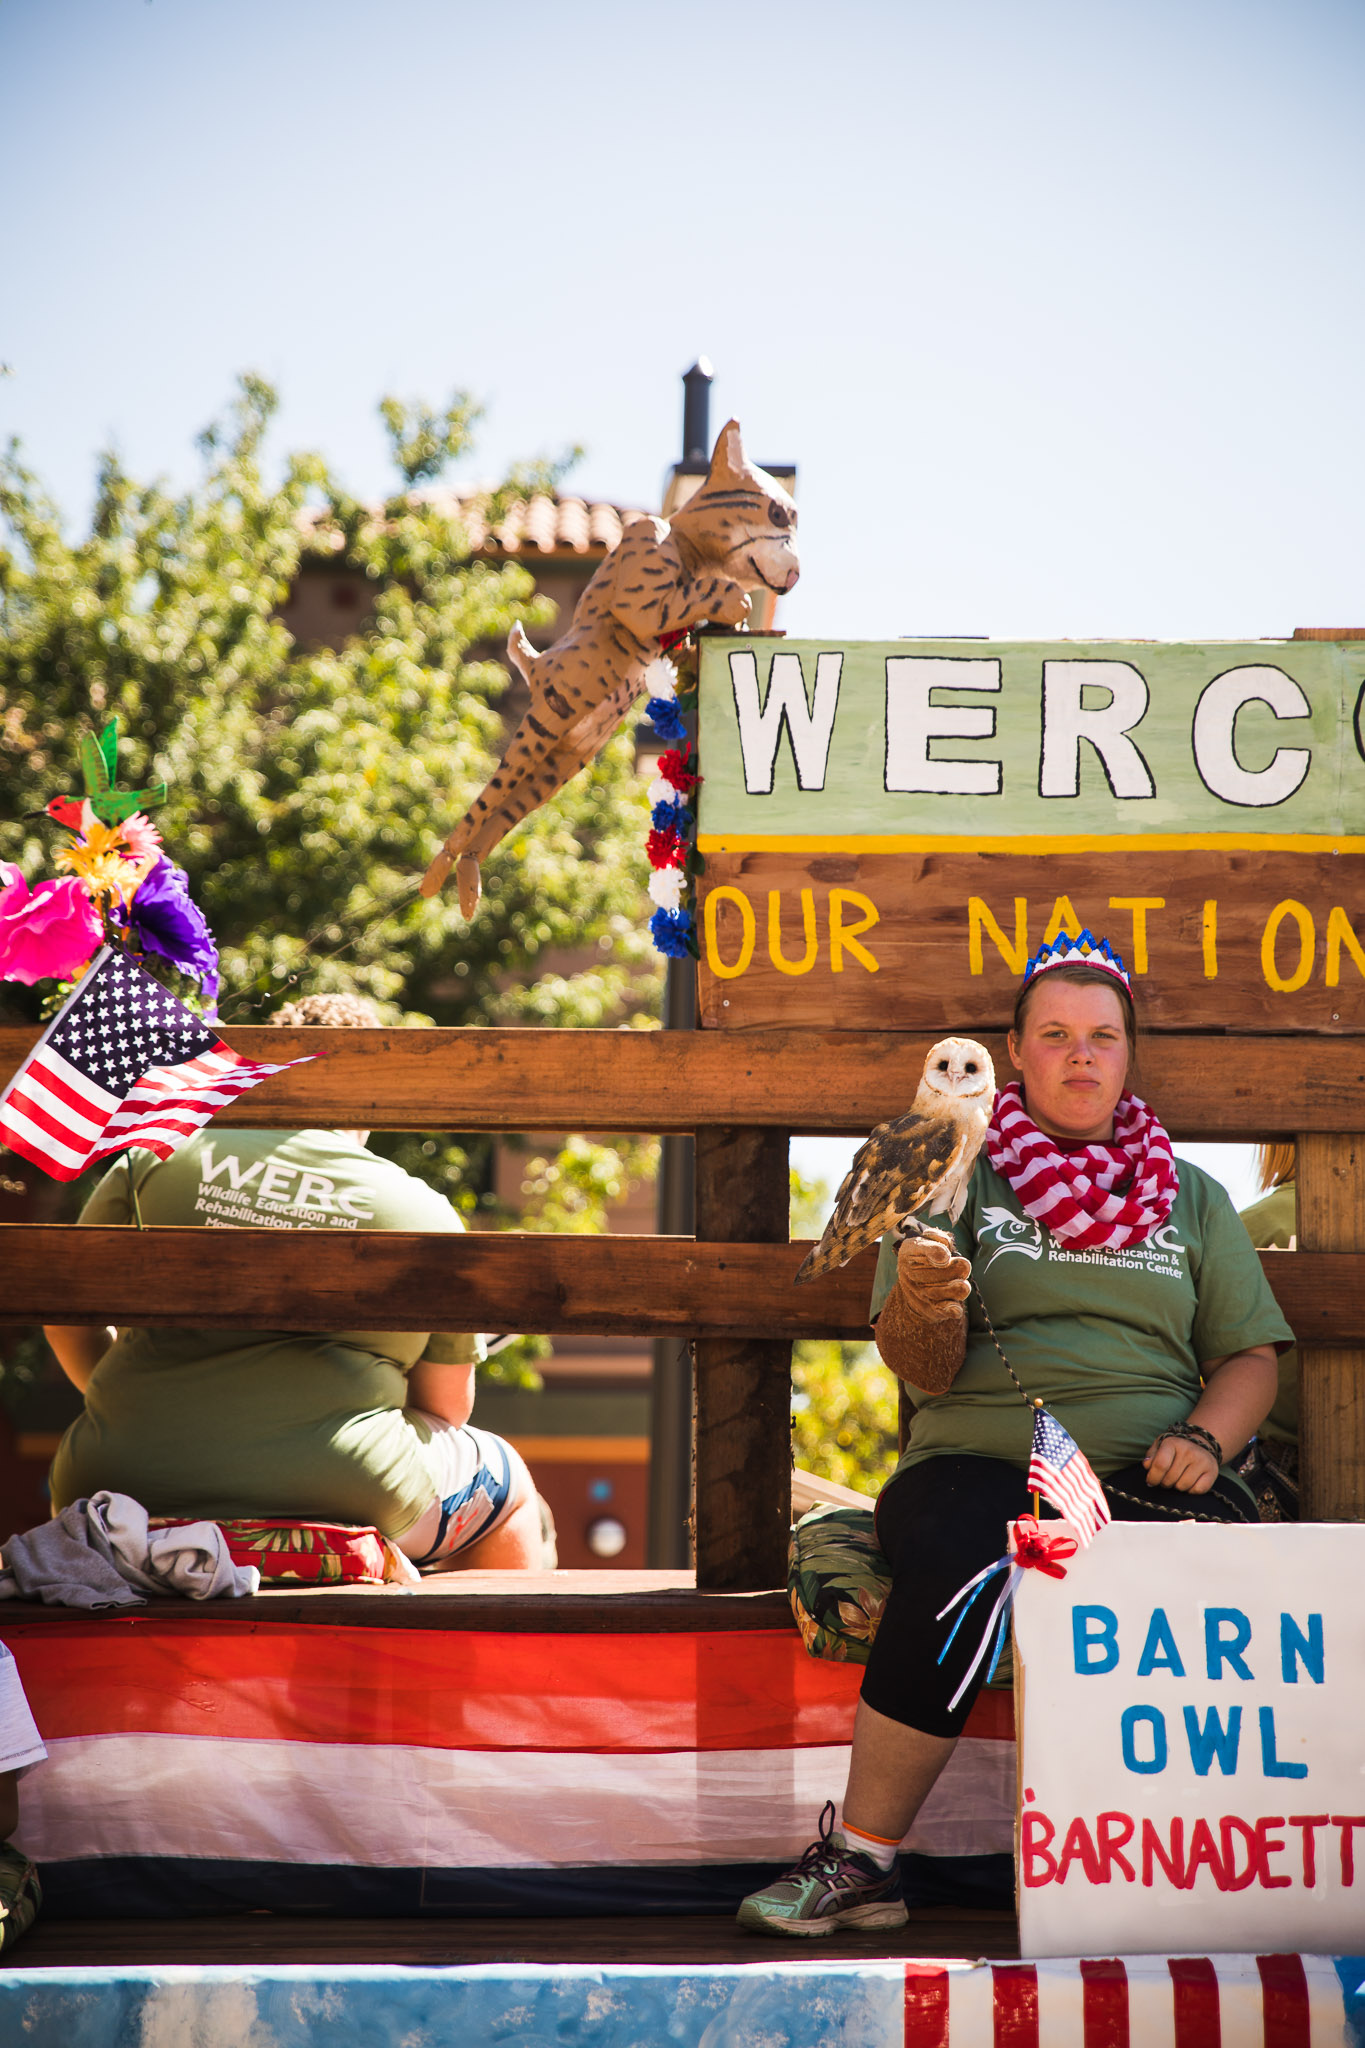 Archer_Inspired_Photography_Morgan_Hill_California_4th_of_july_parade-67.jpg